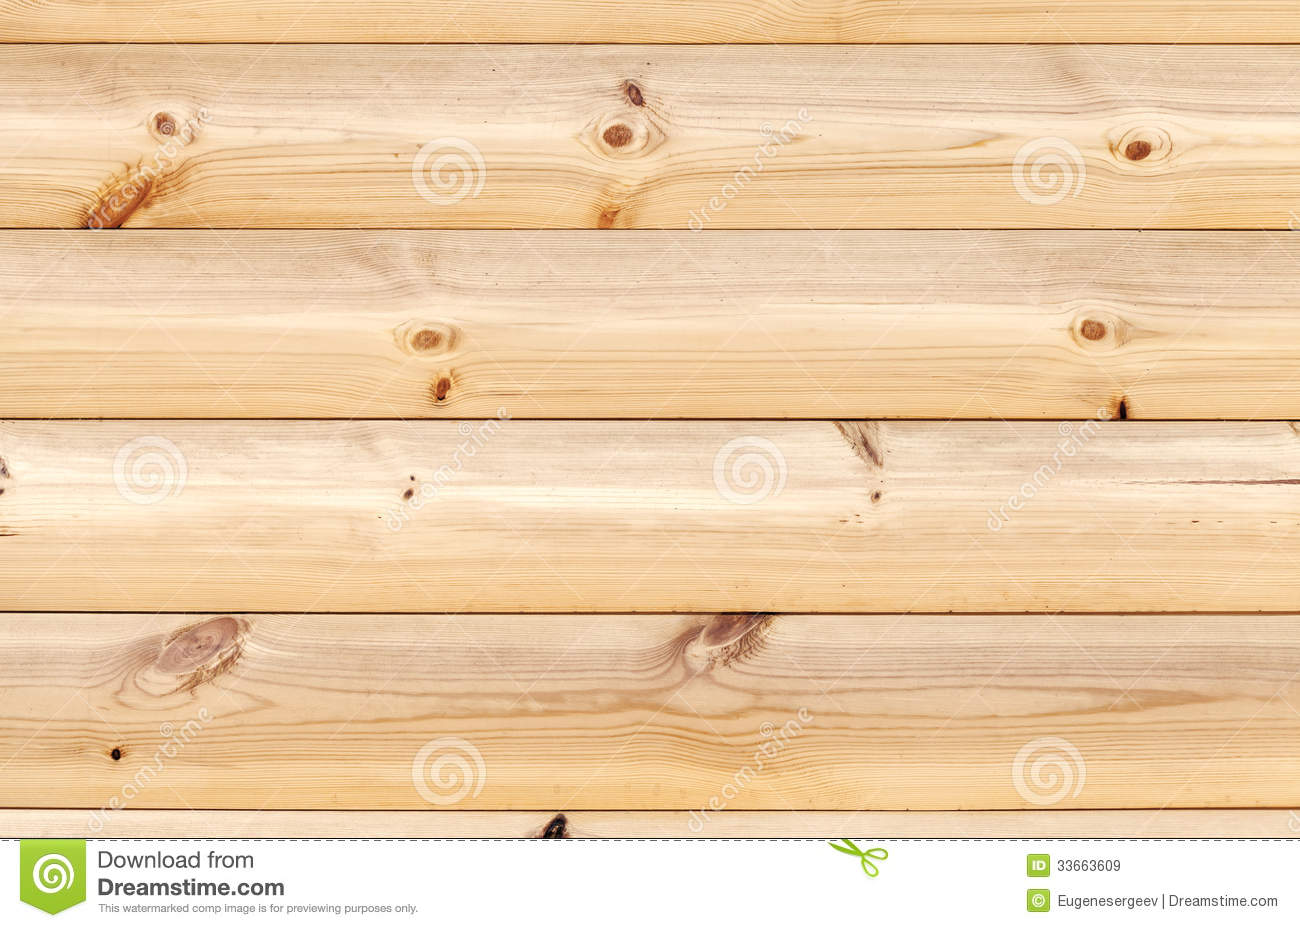 Yellow Wooden Wall Made Of Pine Tree Boards Stock Image - Image of ...